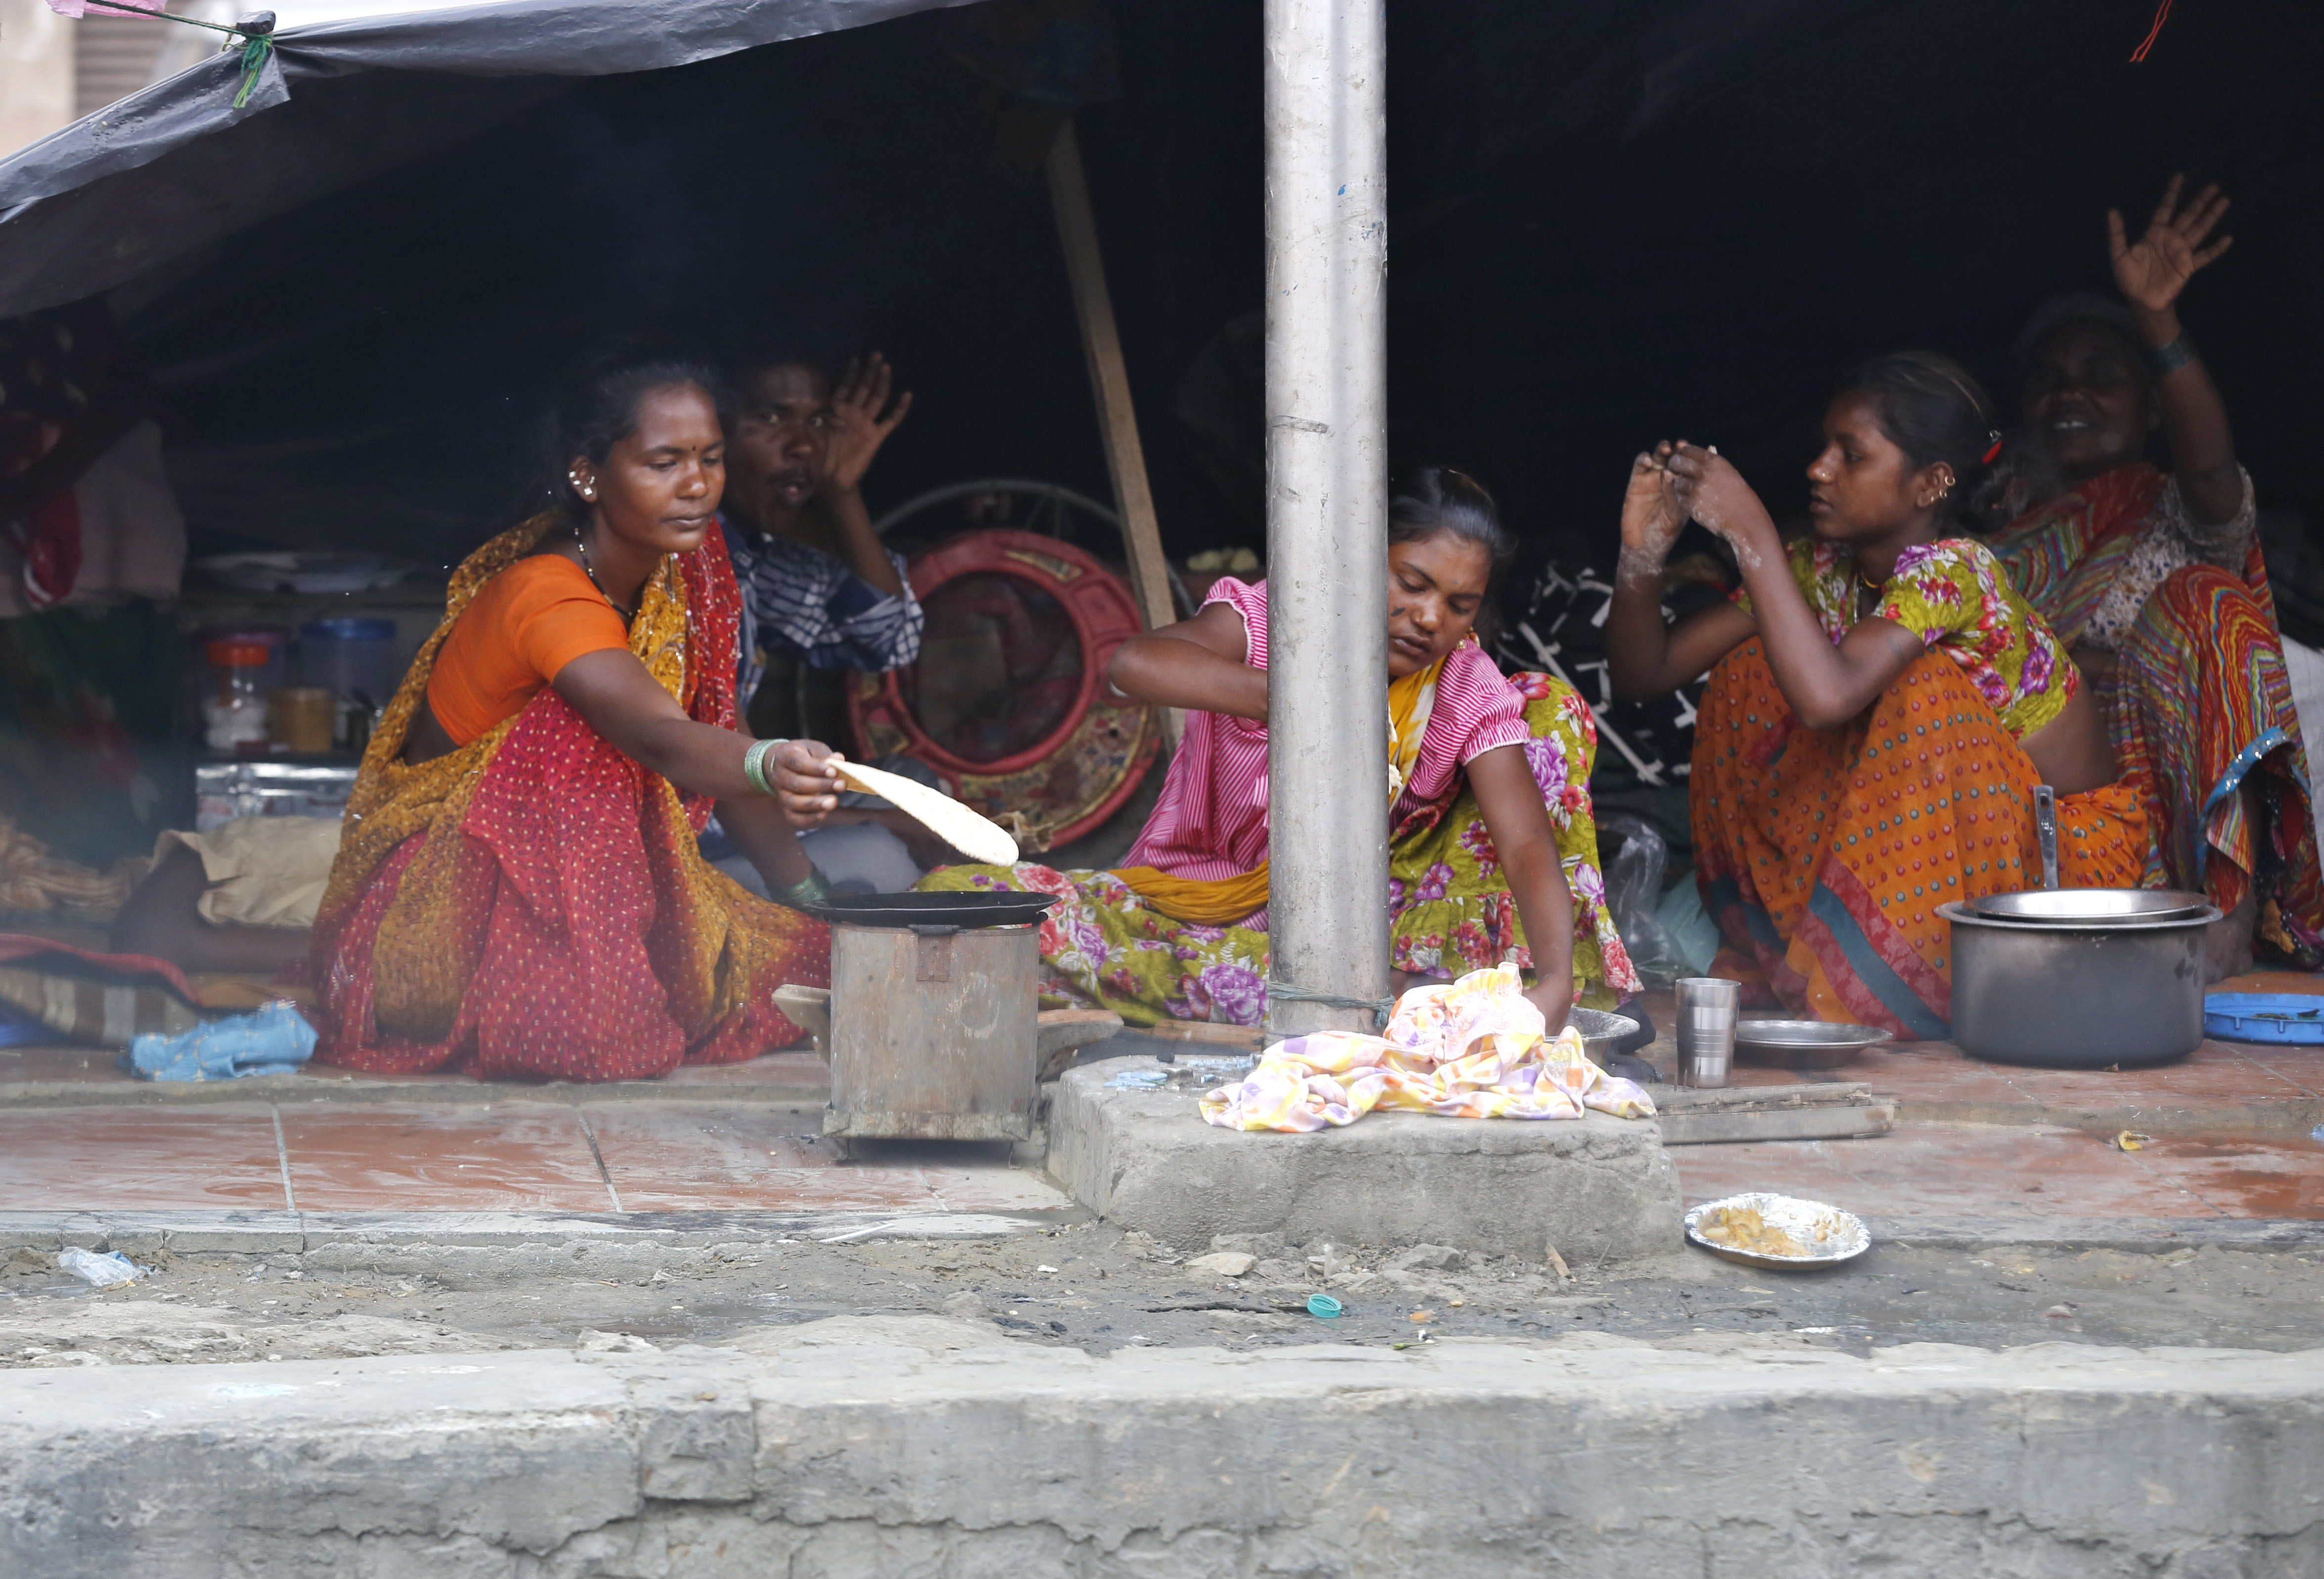 How economic inequality is widening in today's India